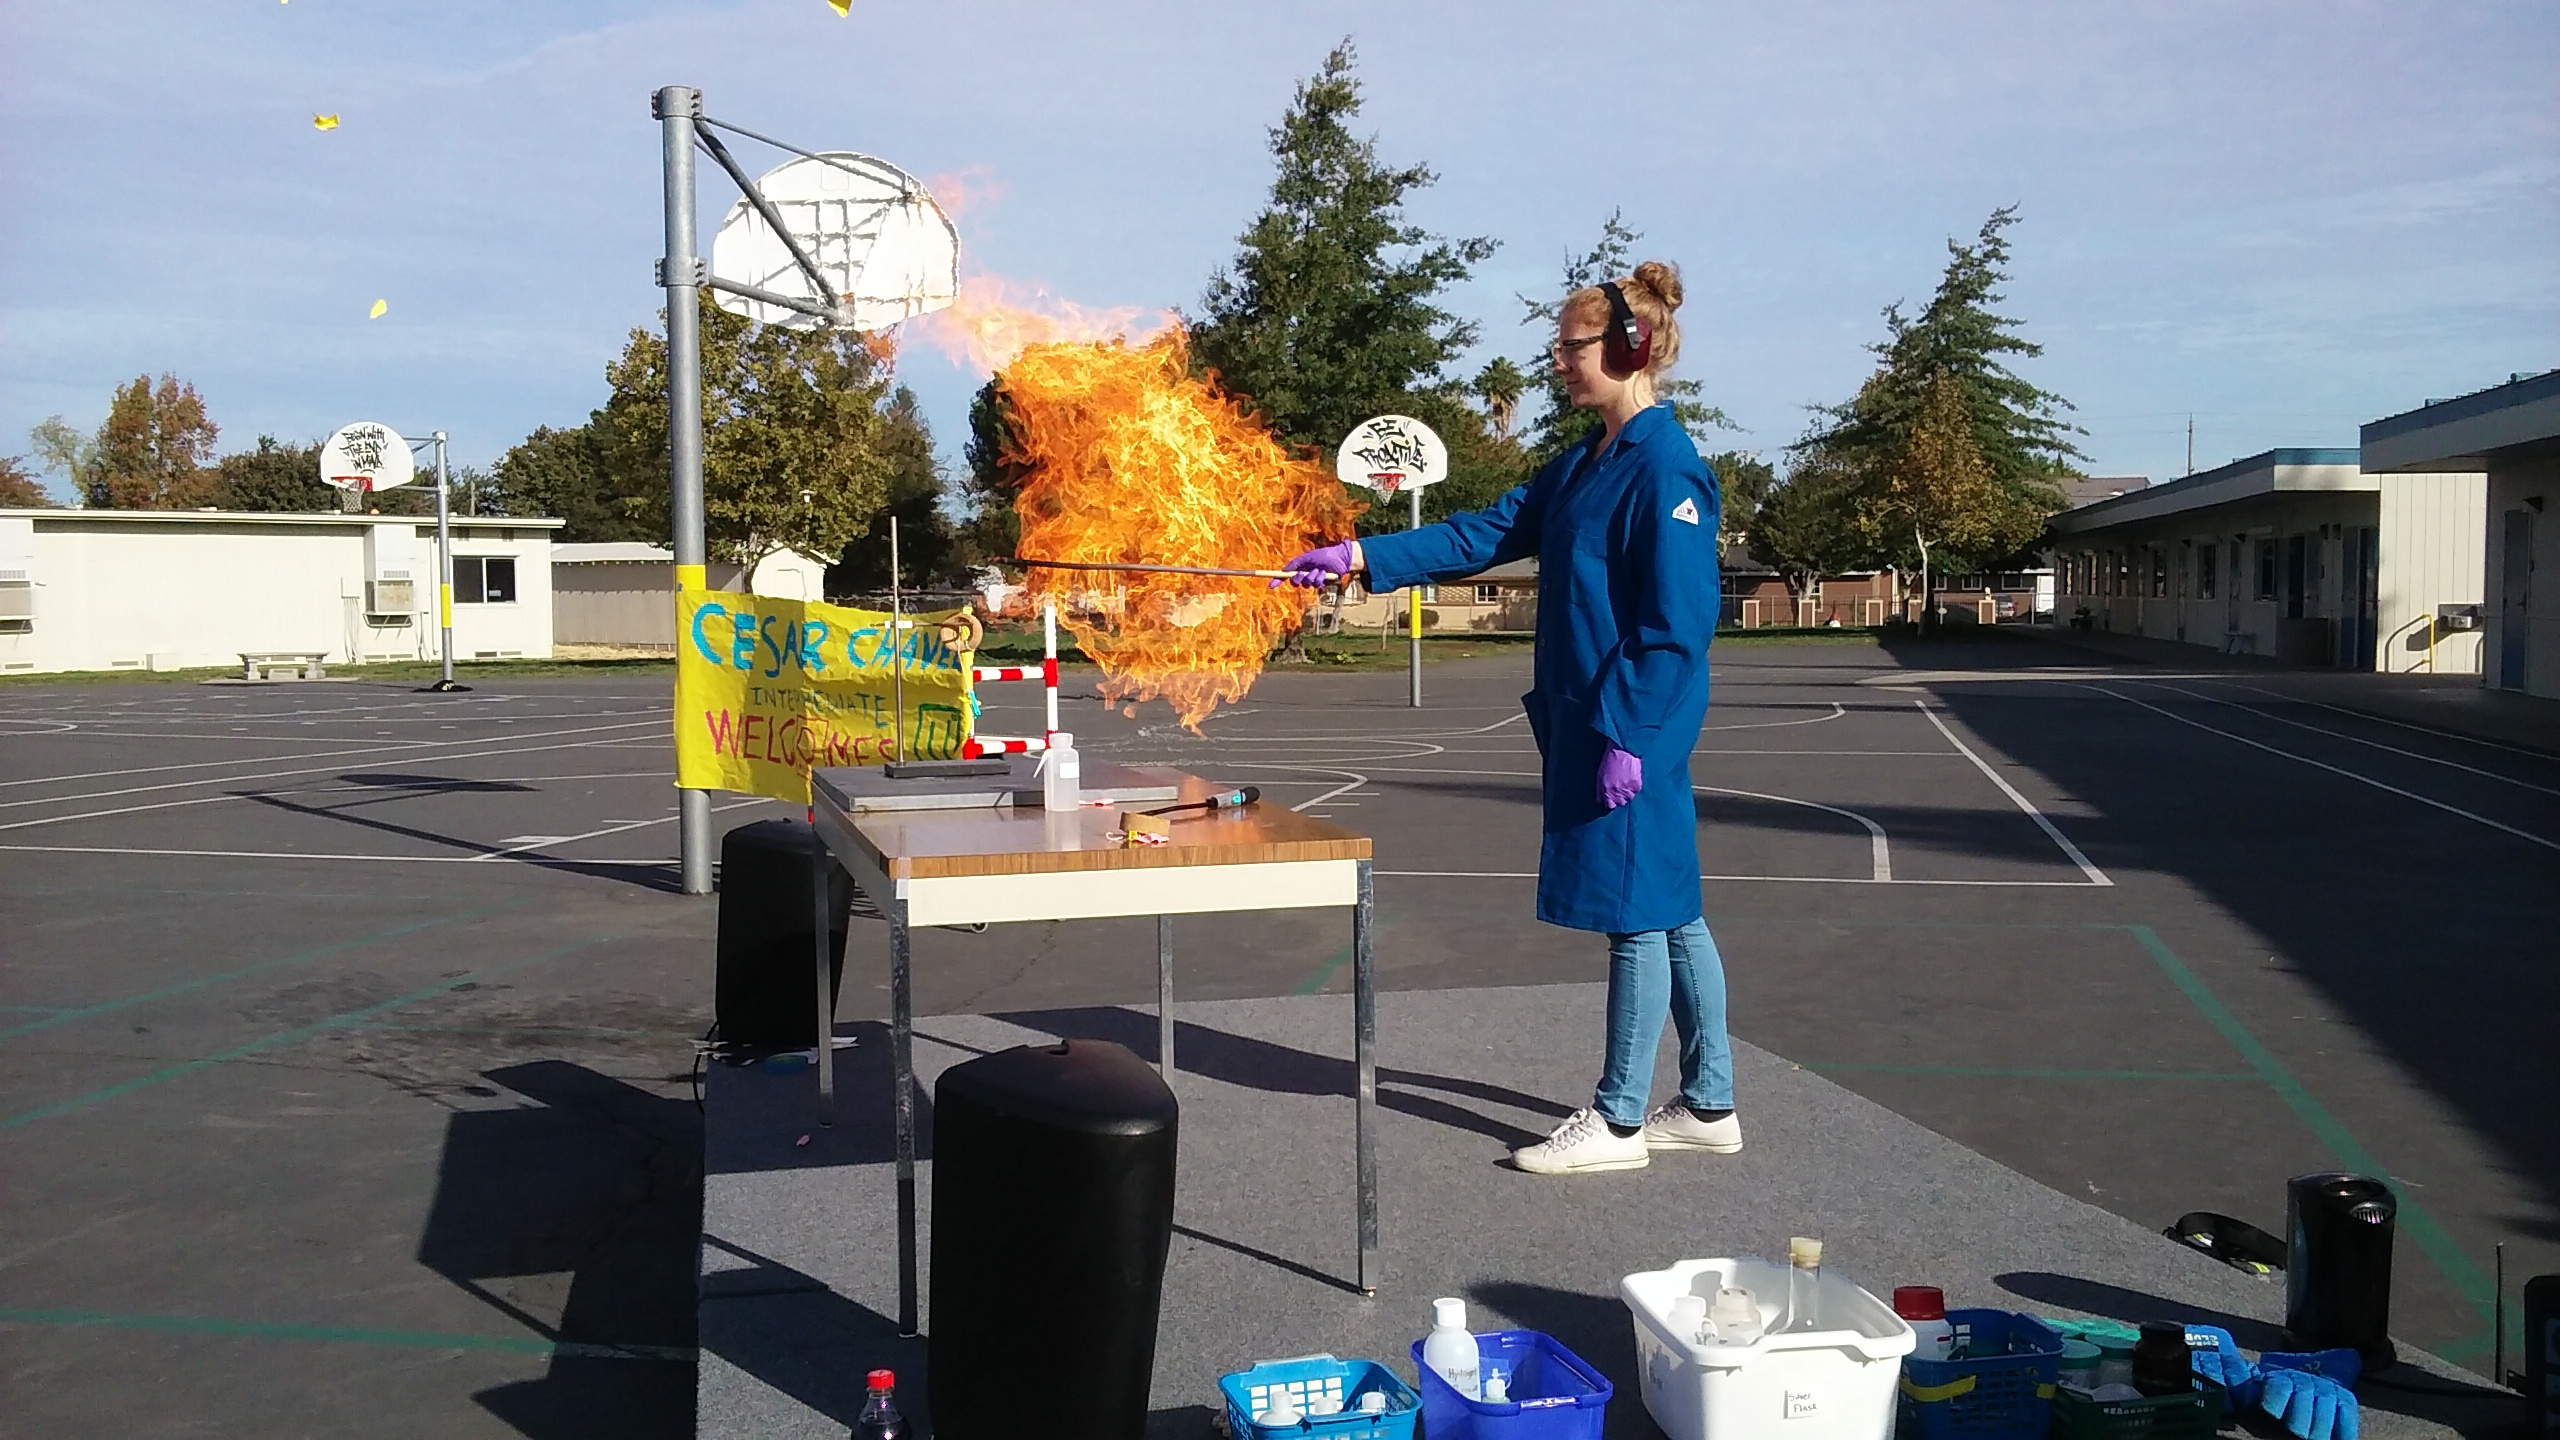 Sommer demonstrates propane combustion at an outreach event at an elementary school by triggering an explosion a propane-filled balloon with just a small flame.